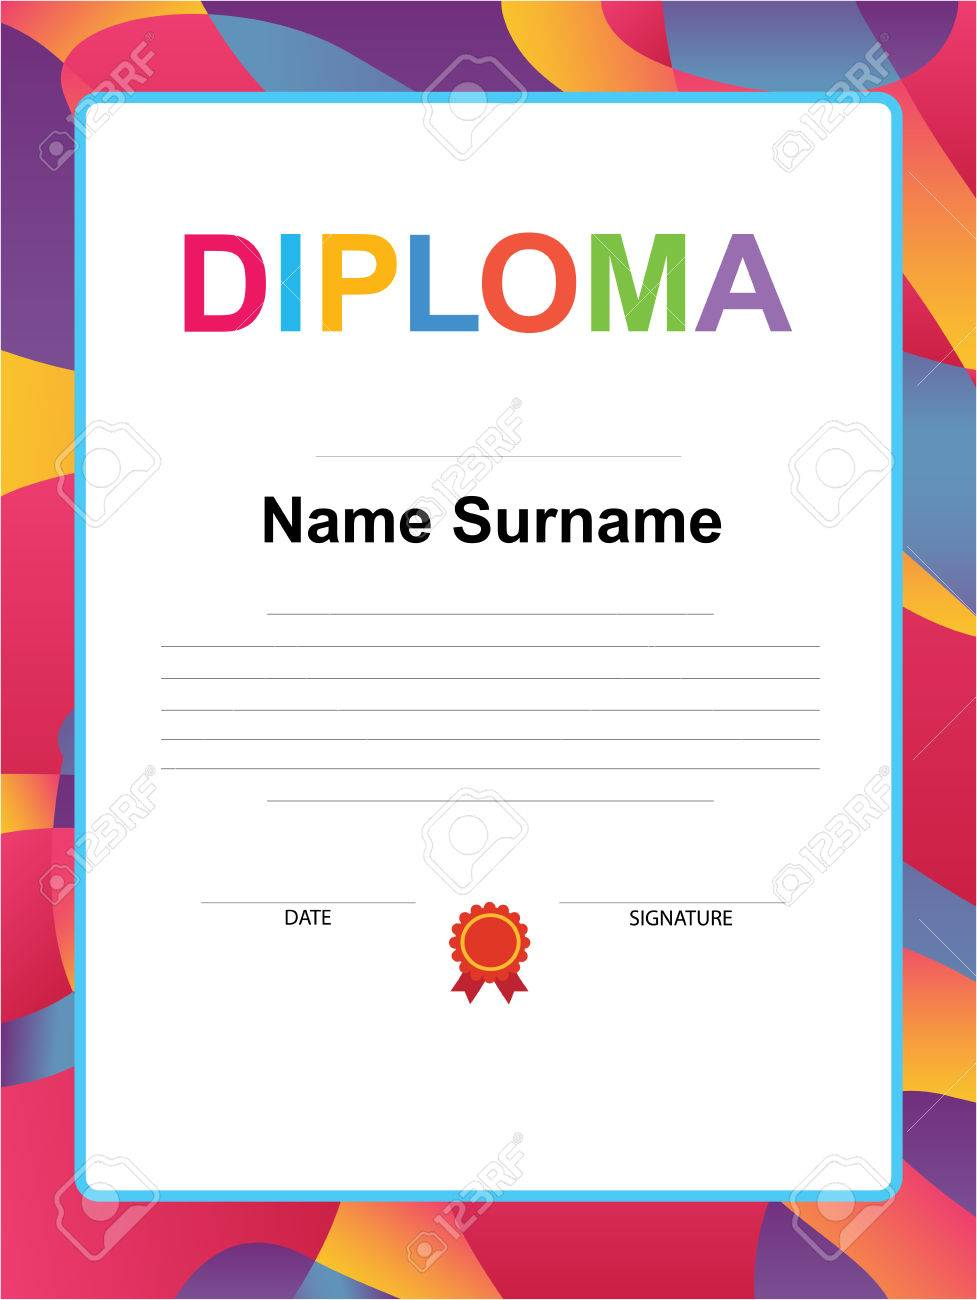 kids diploma certificate background design template royalty free